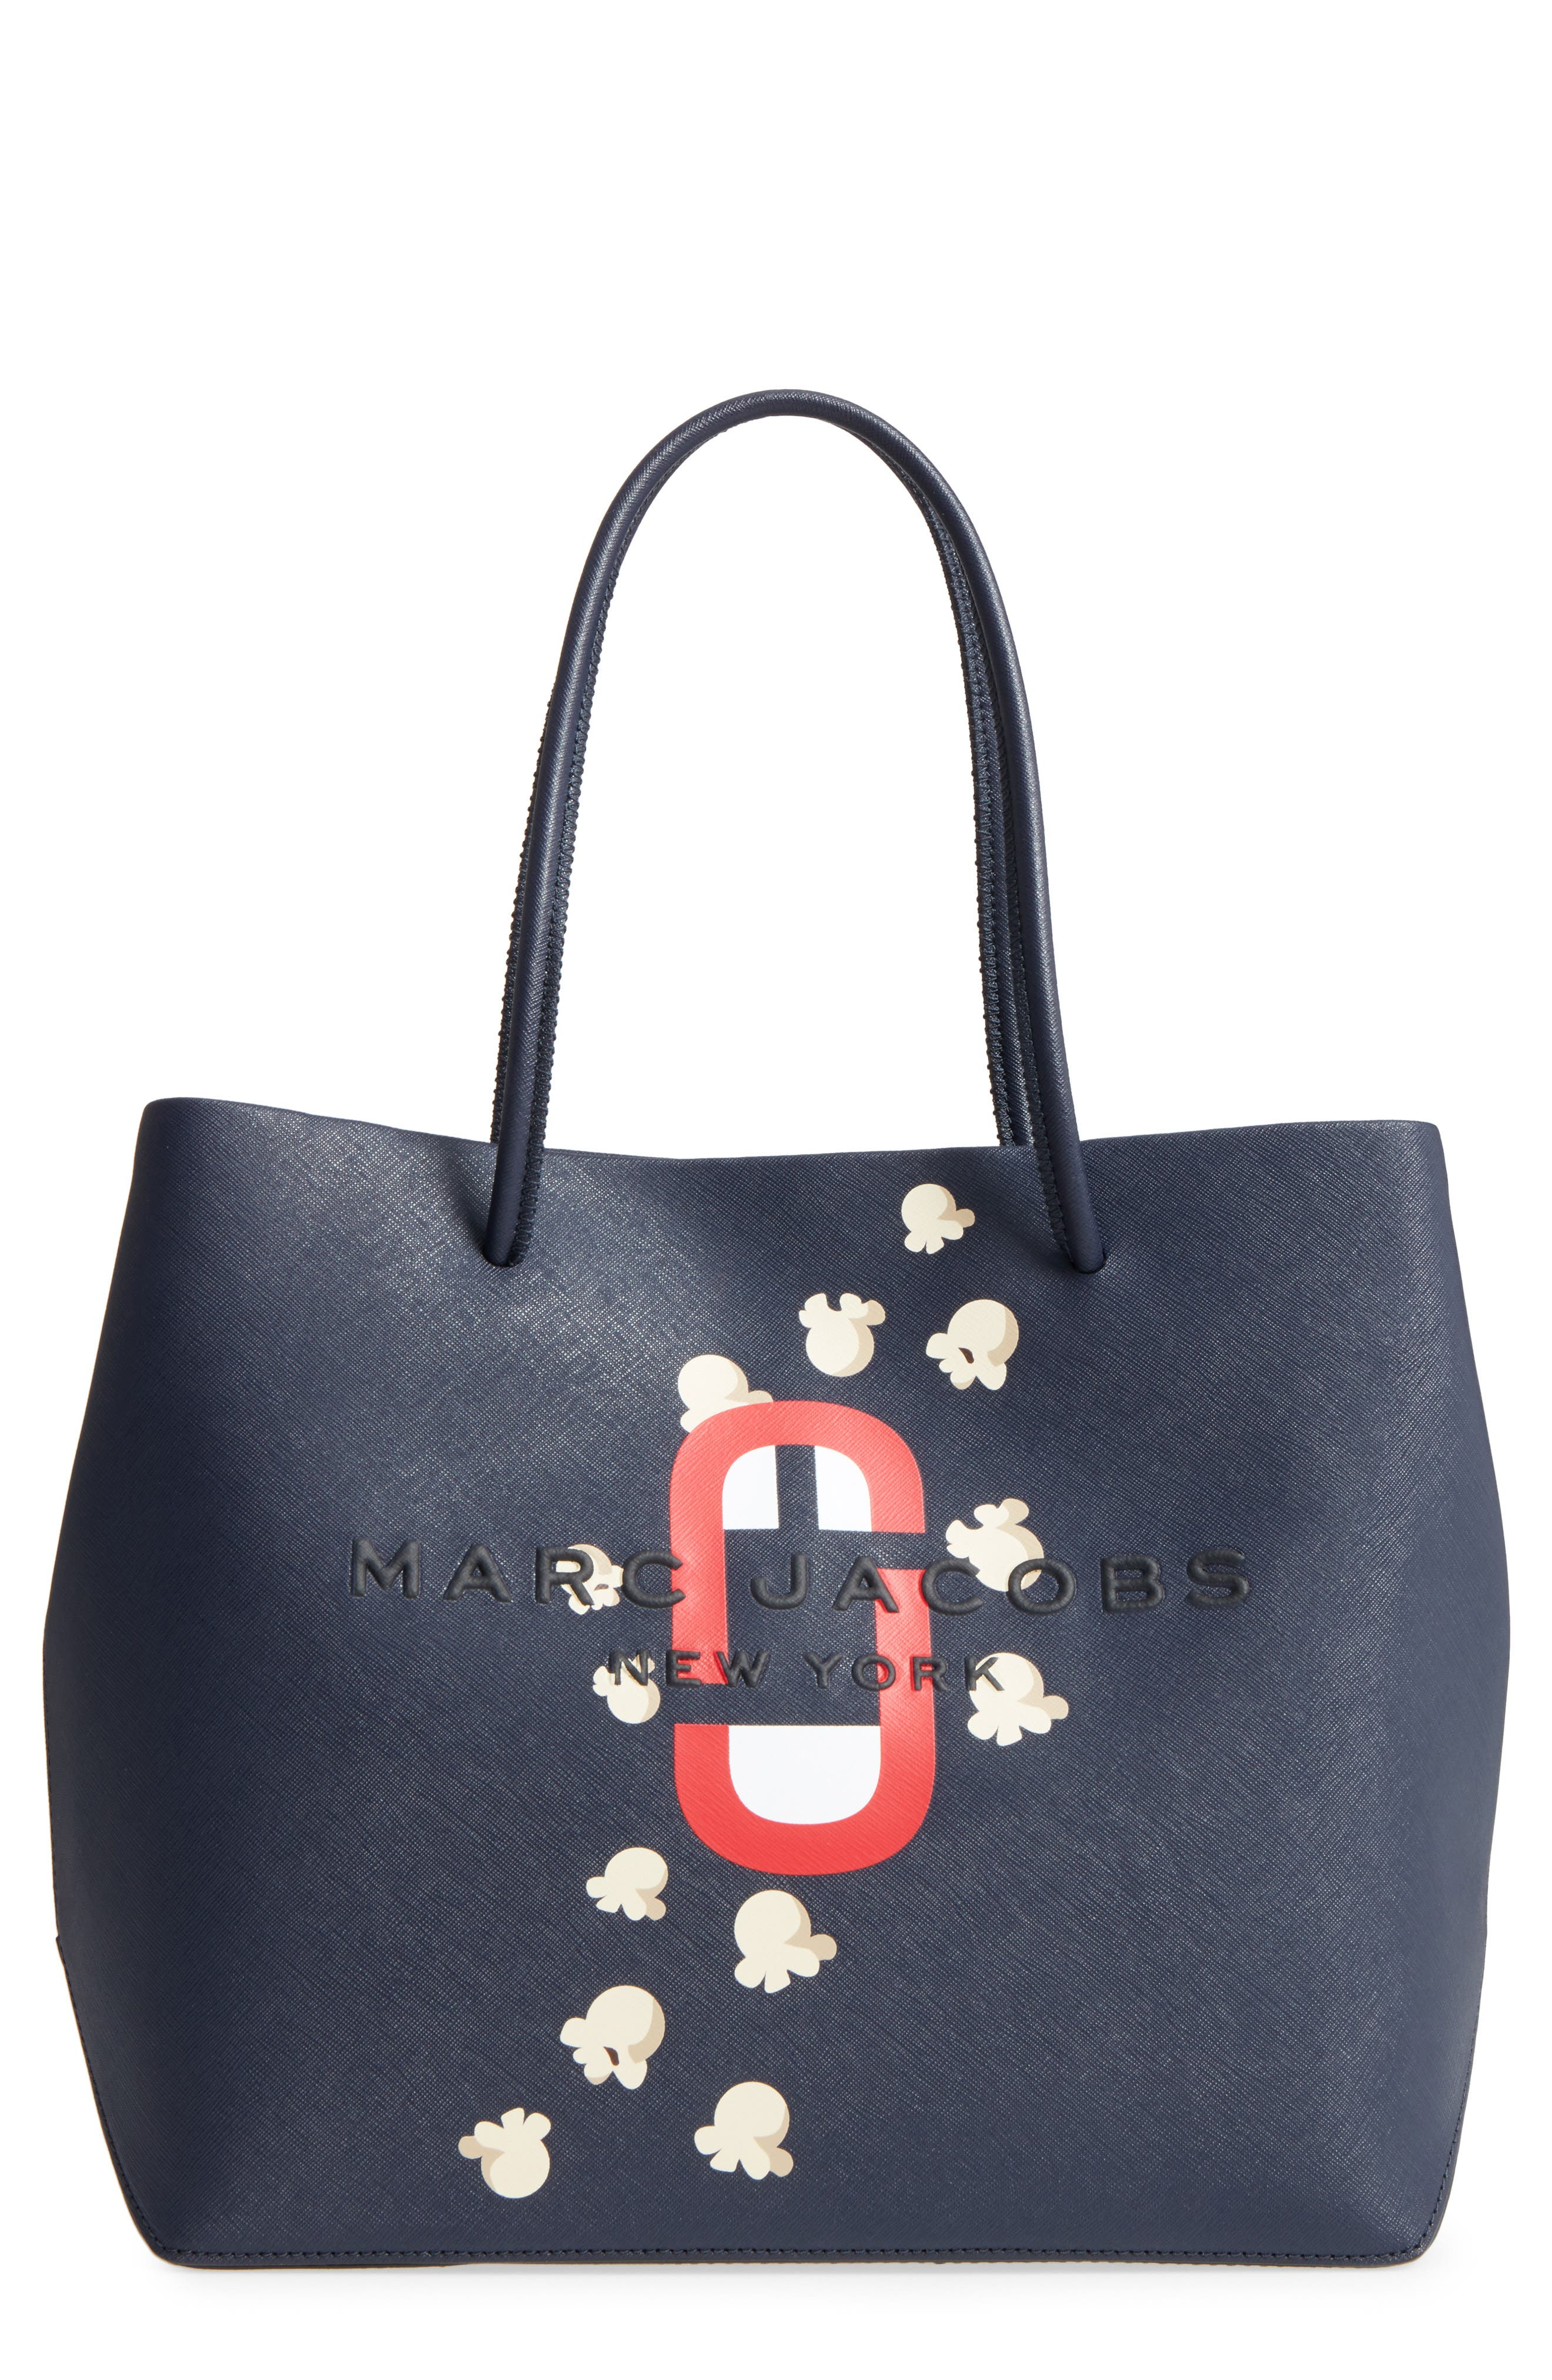 MARC JACOBS Popcorn Logo Scream Leather Tote